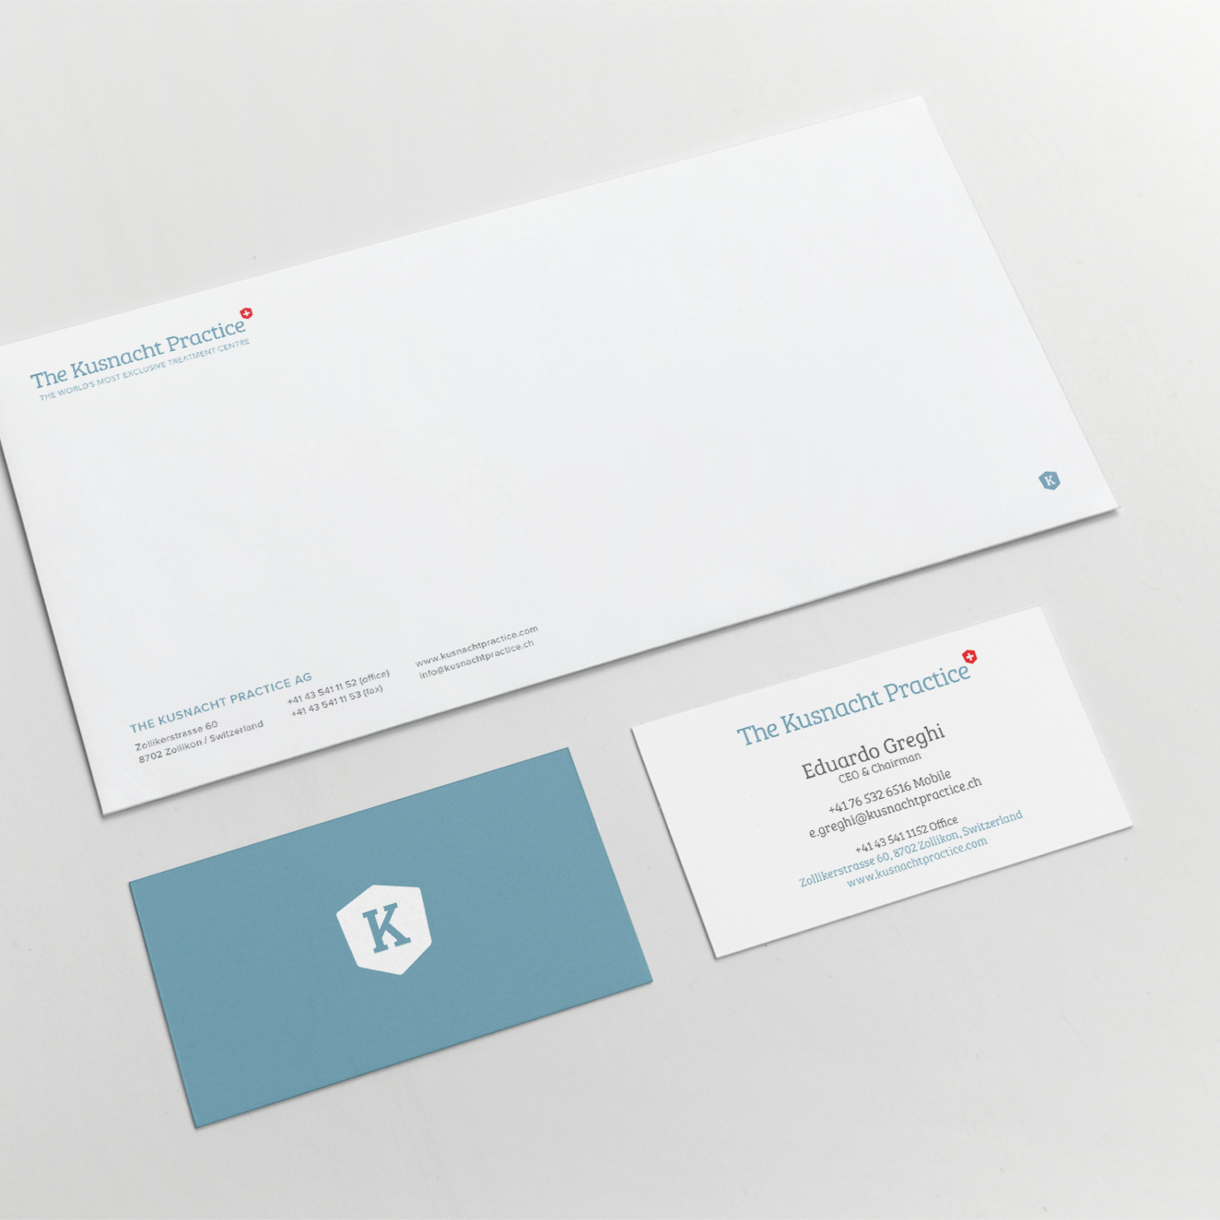 kunsnacht - business cards